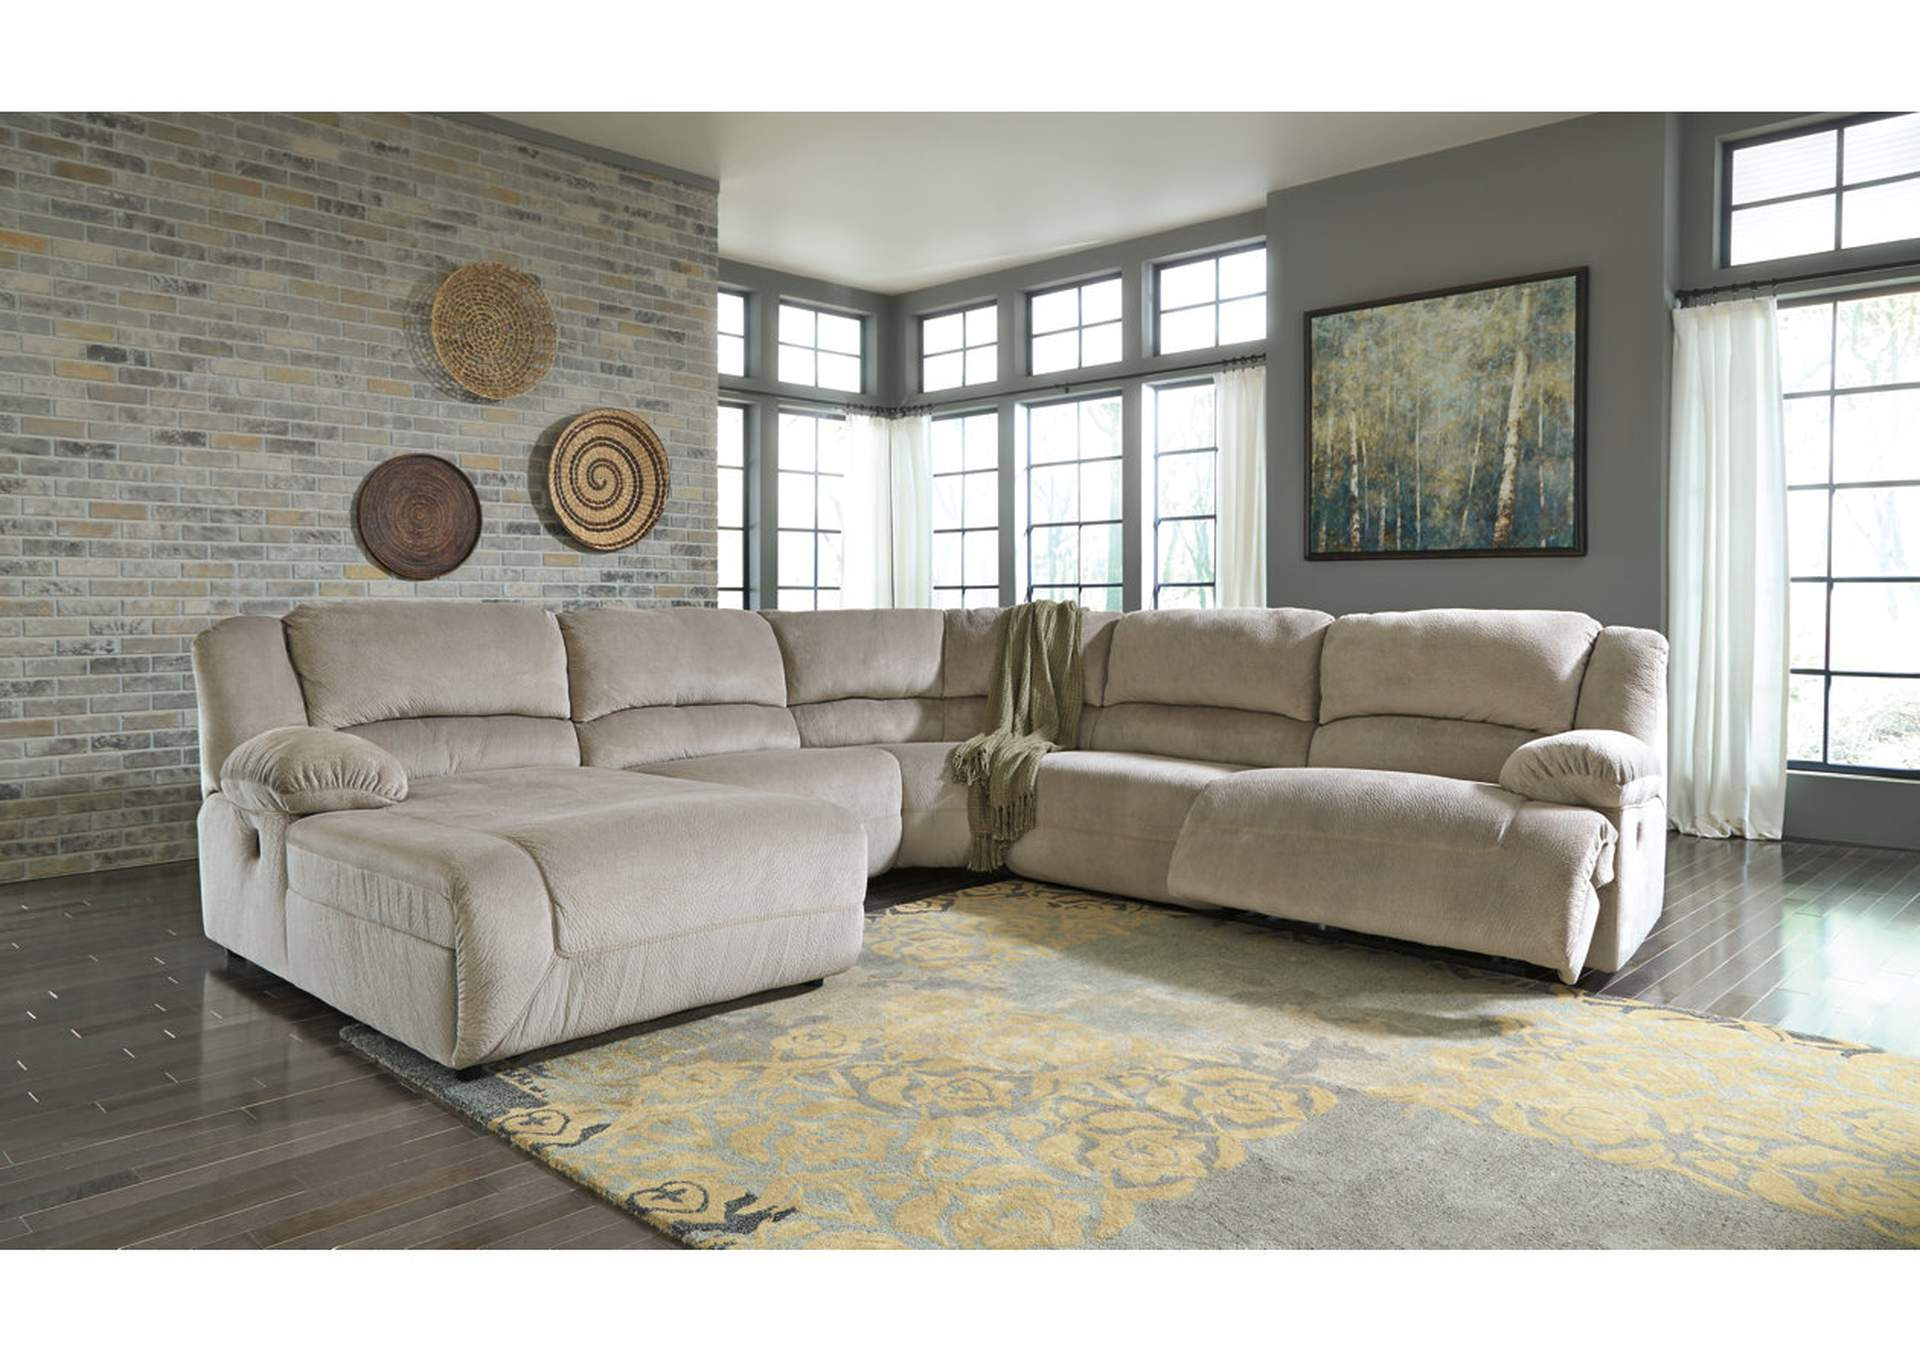 Toletta Granite Zero Wall Reclining Console Sectional W/Left Facing  Chaise,Signature Design By